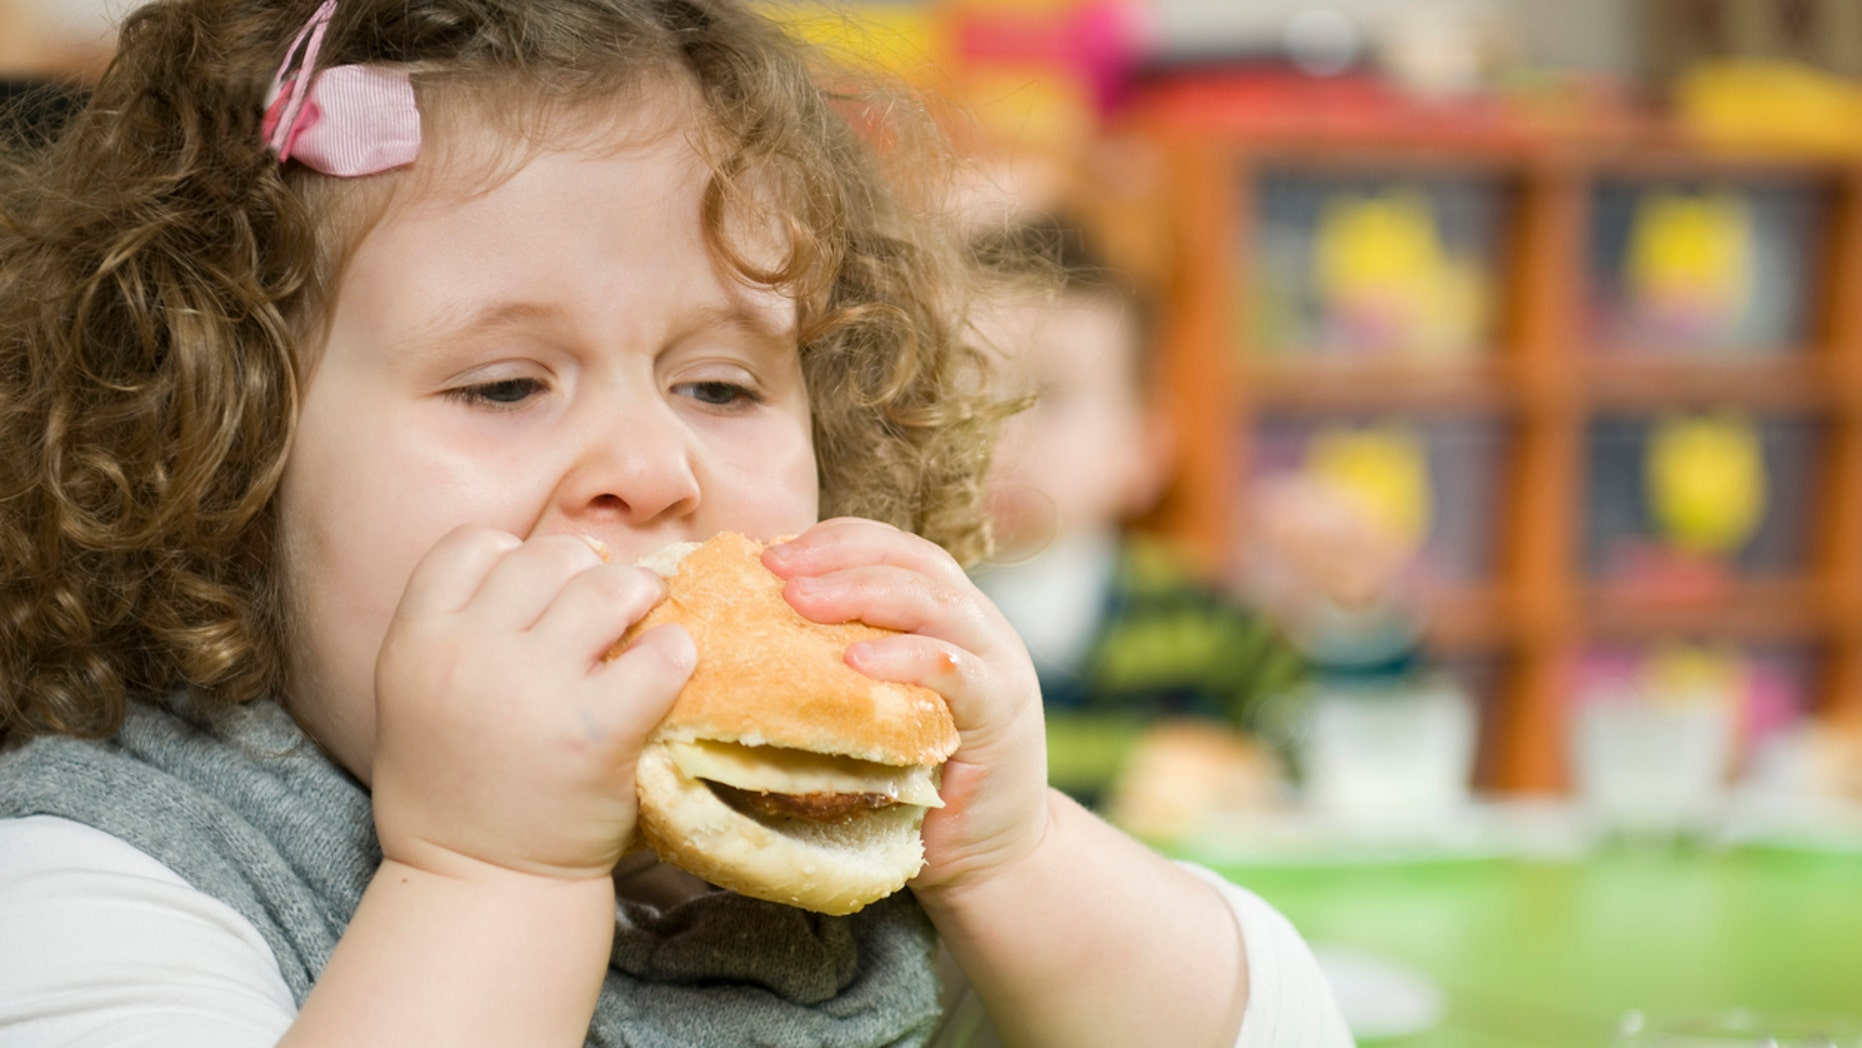 The report found that two billion of the world's seven billion people are now overweight or obese.